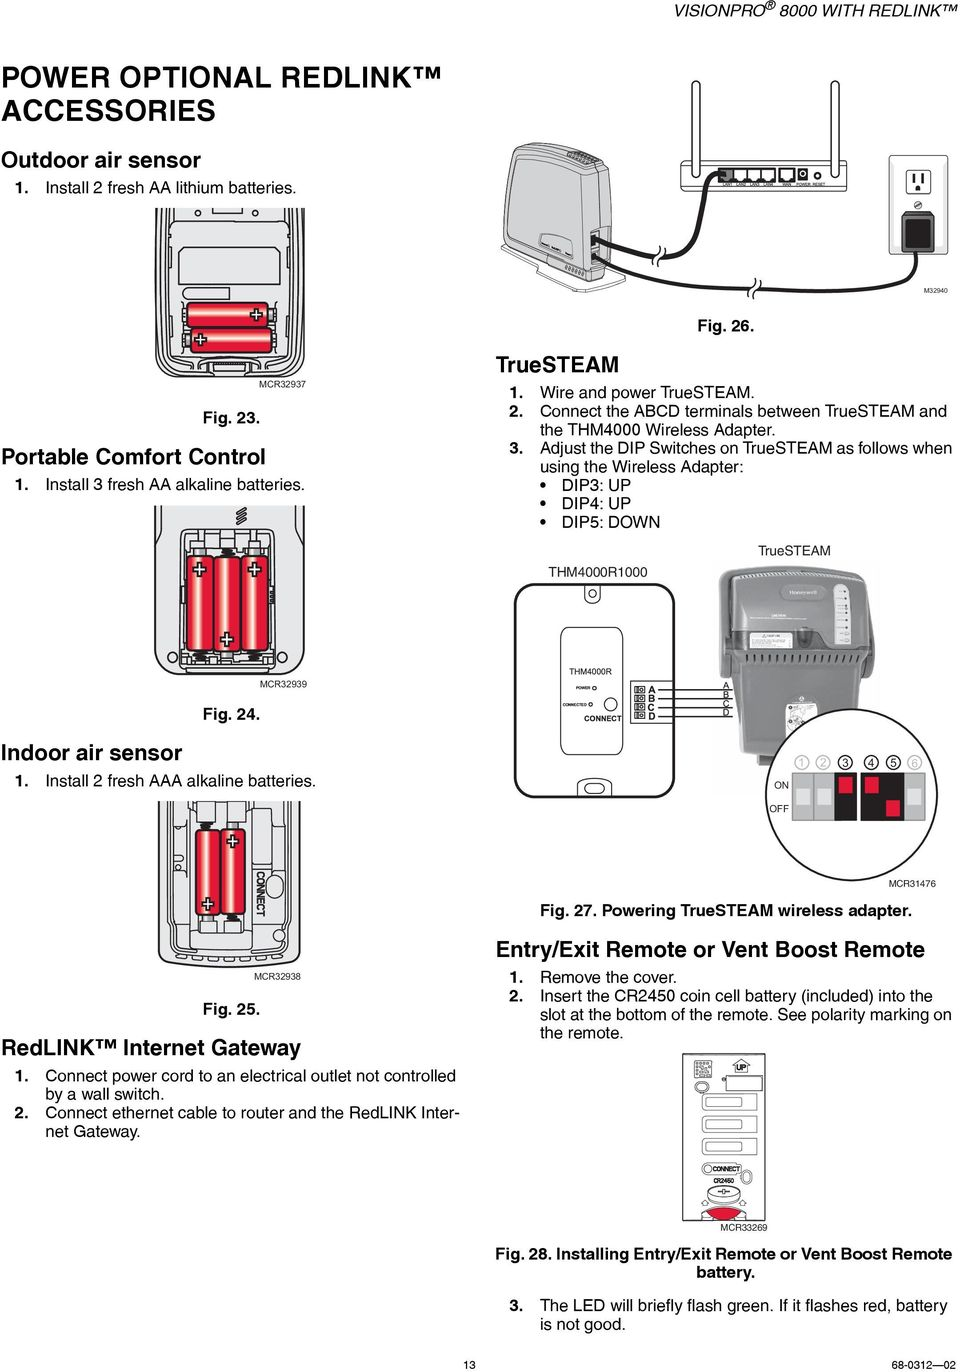 Visionpro 8000 With Redlink Pdf Dry Cell Battery Diagram On Parts Of A Alkaline